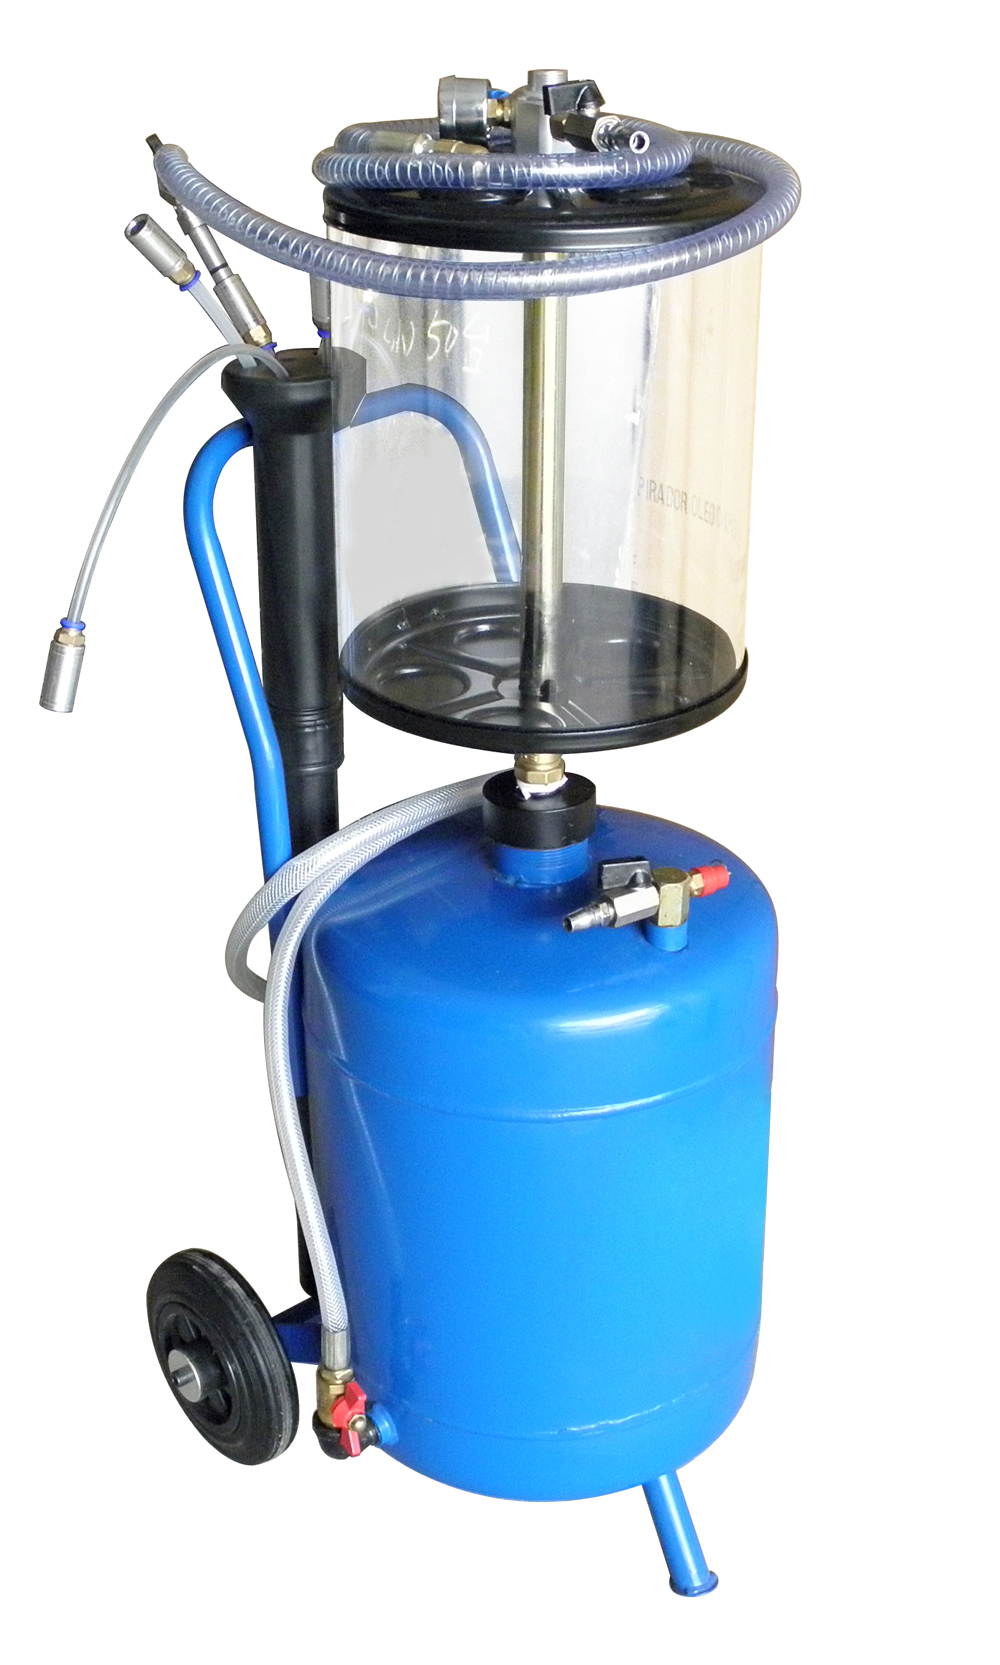 3027 pneumatic pumping waste oil machine